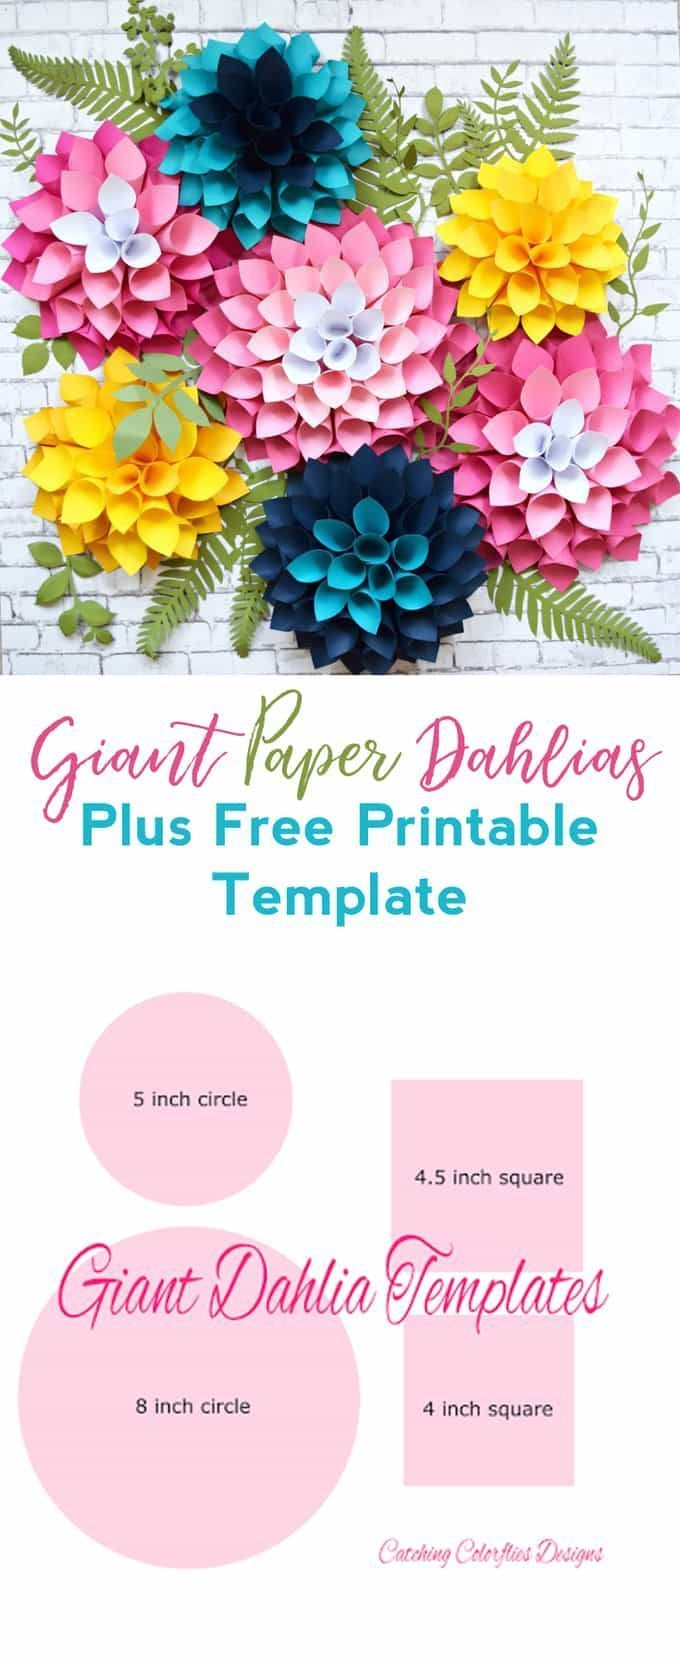 Step by Step Easy Giant Paper Dahlia Tutorial | Spring Parties and